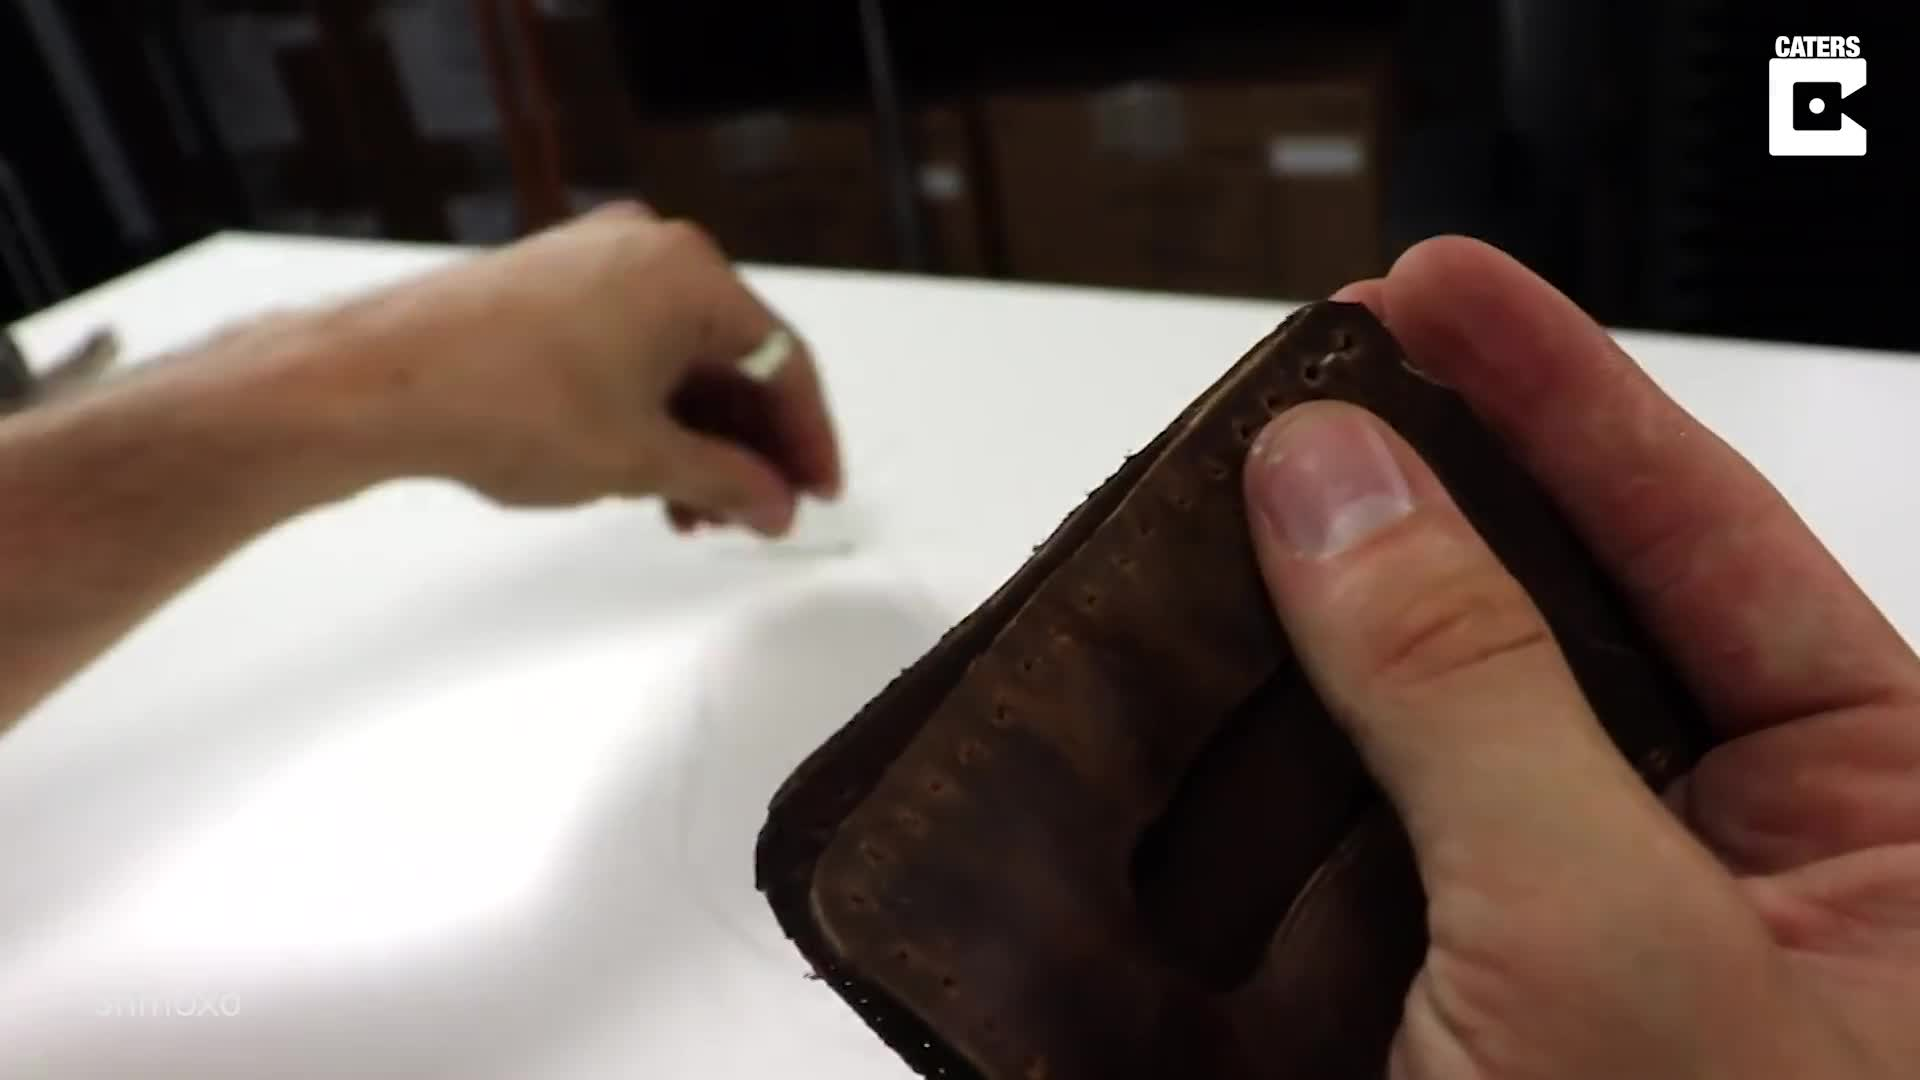 WHAT A BOOT-IFUL GIFT: ARTIST SHOWS CRAFTY WAY TO CREATE A STYLISH WALLET FROM AN OLD DISCARDED BOOT